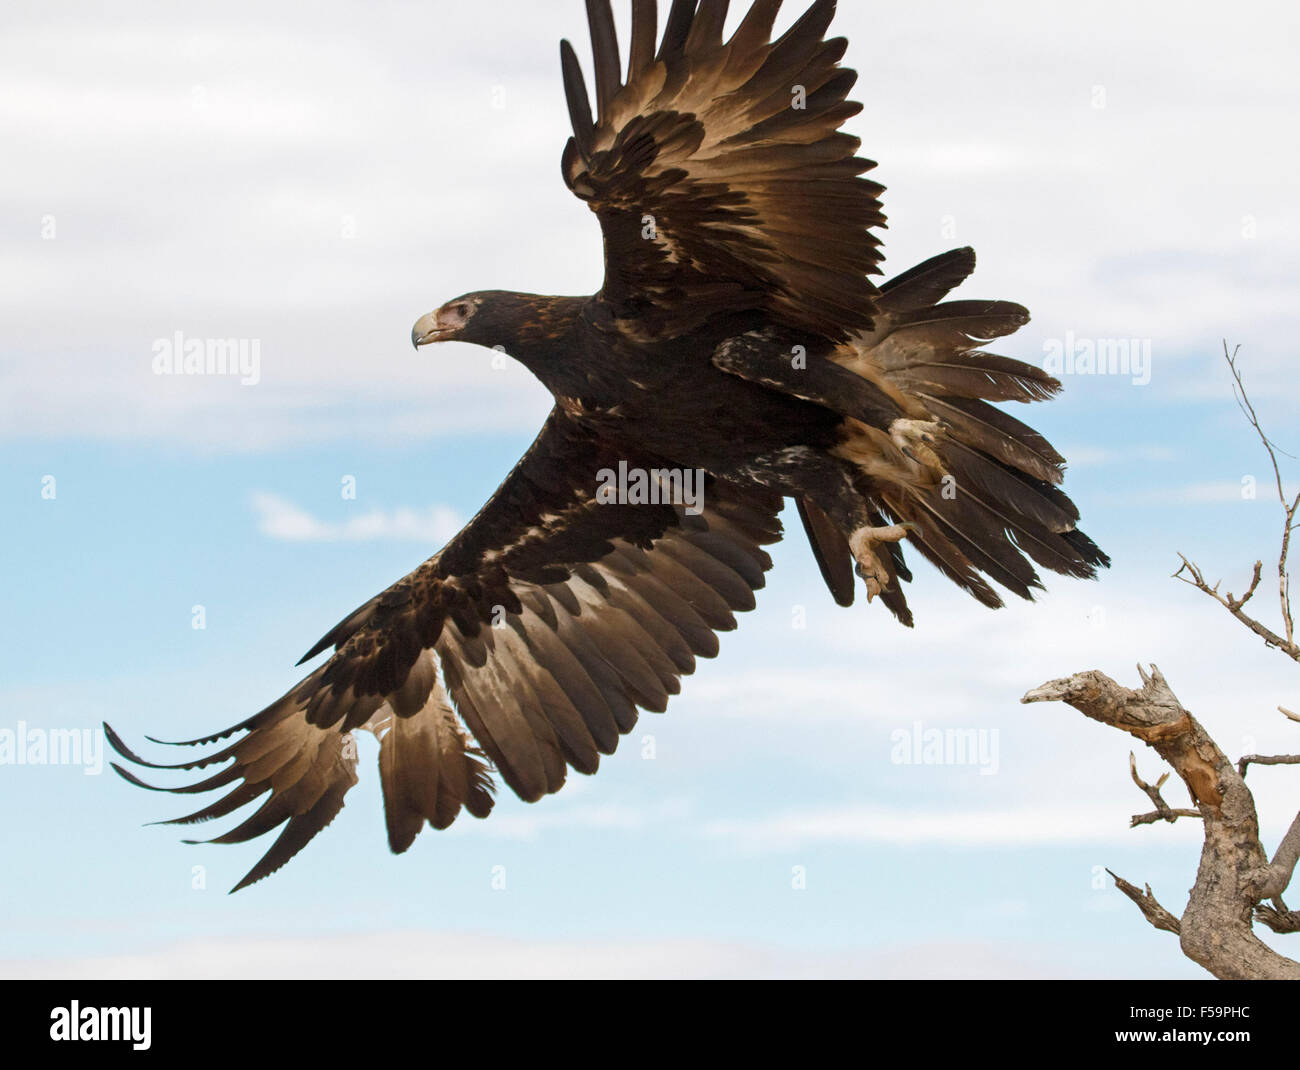 Stunning view of majestic wedge-tailed eagle, Aquila audax, in flight, huge wings extended against blue sky in outback - Stock Image